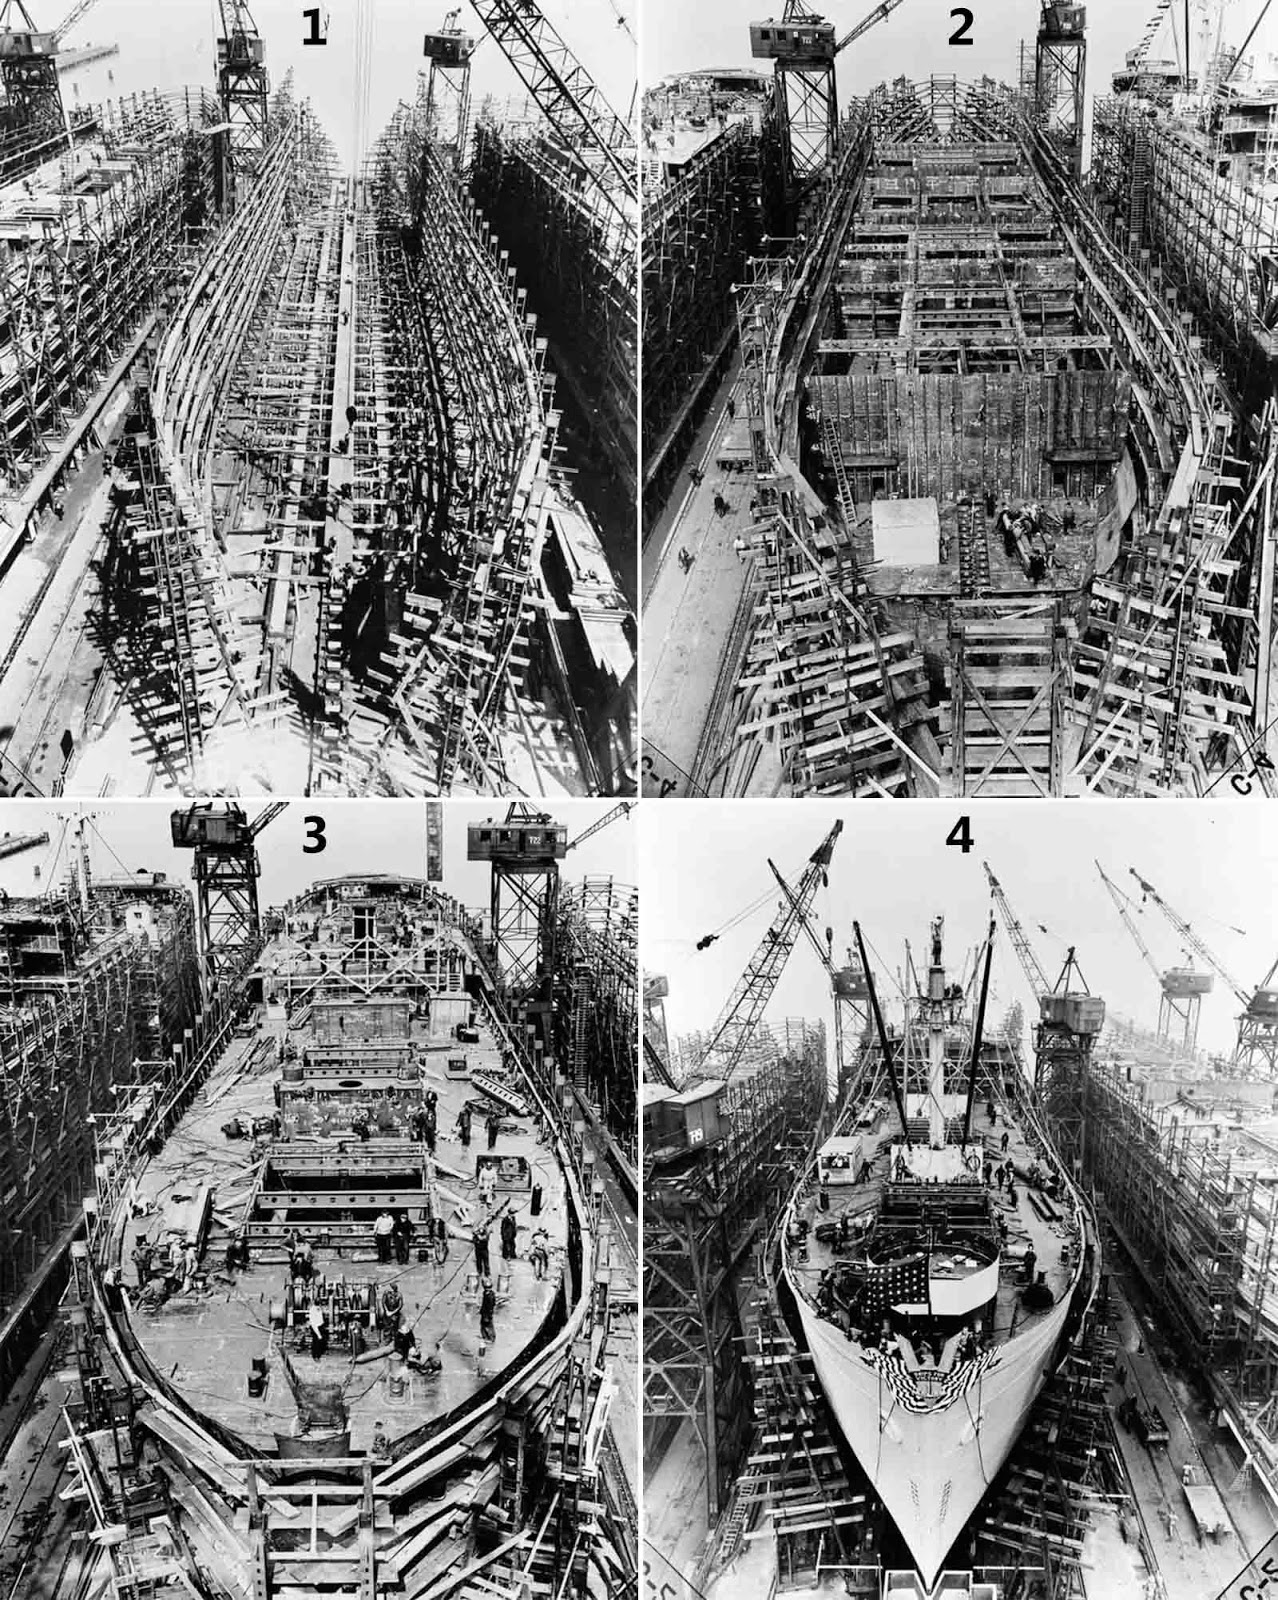 1) Day 2: Keel plates are laid. 2) Day 6 : Bulkheads and girders below second deck are in place. 3) Day 14: Upper deck is in place. 4) Day 24: Ship is ready for launch.